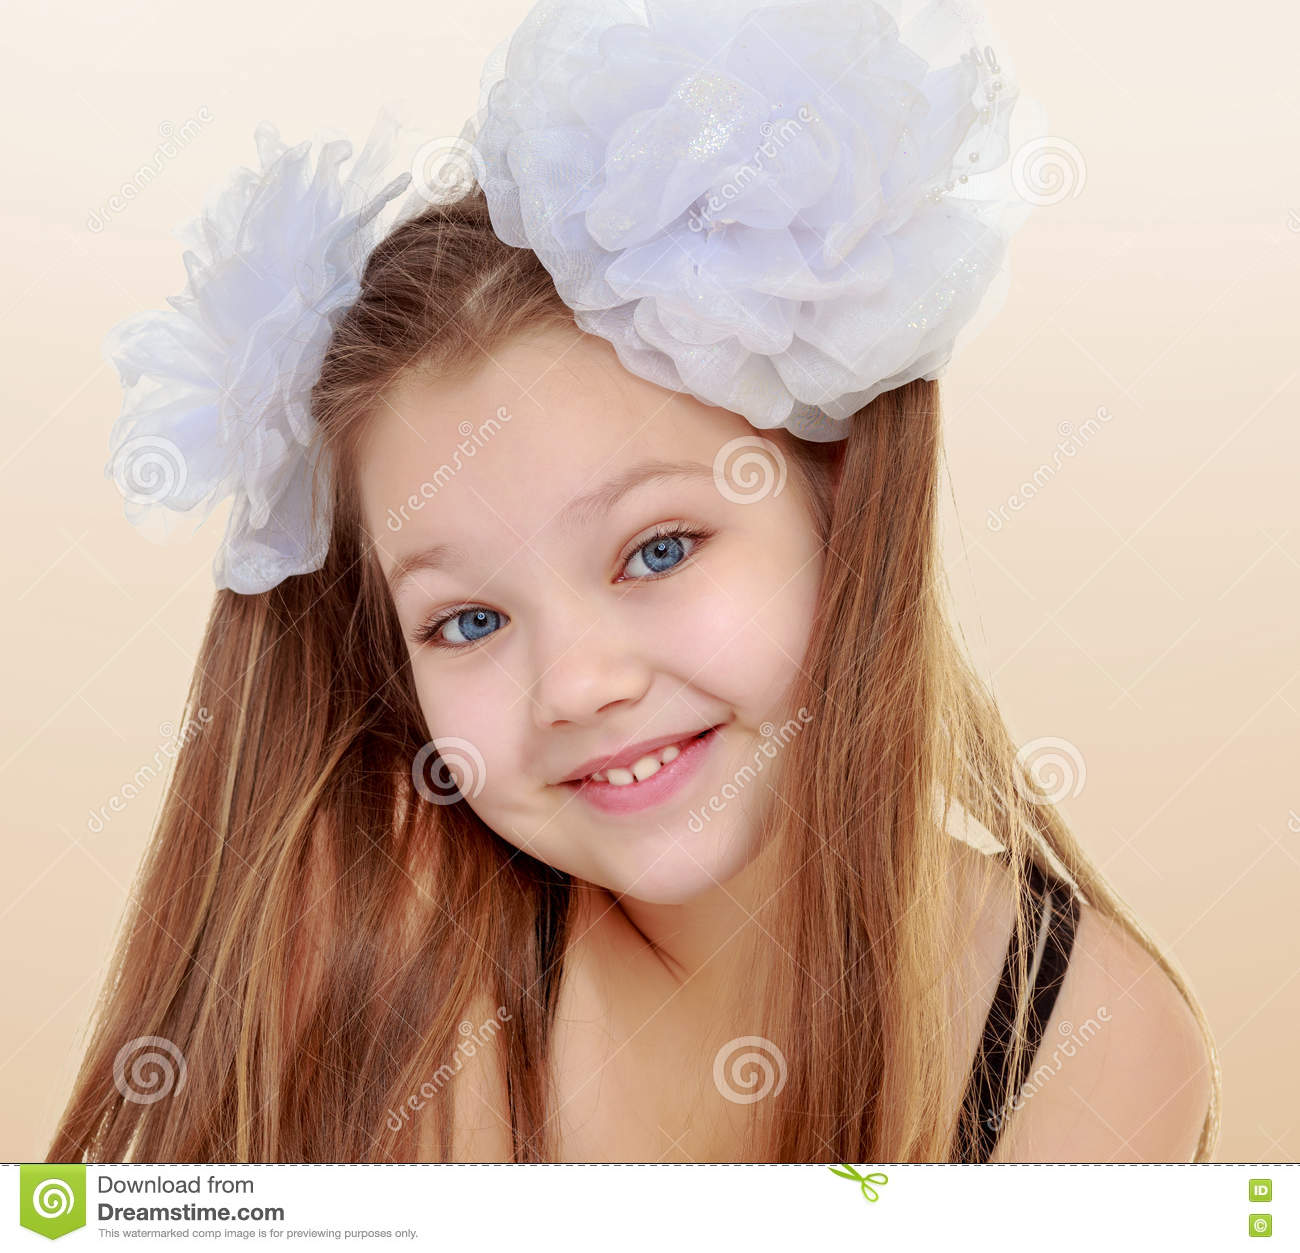 Beautiful Little Girl Bedrooms: Beautiful Little Girl With White Bows On The Head Stock